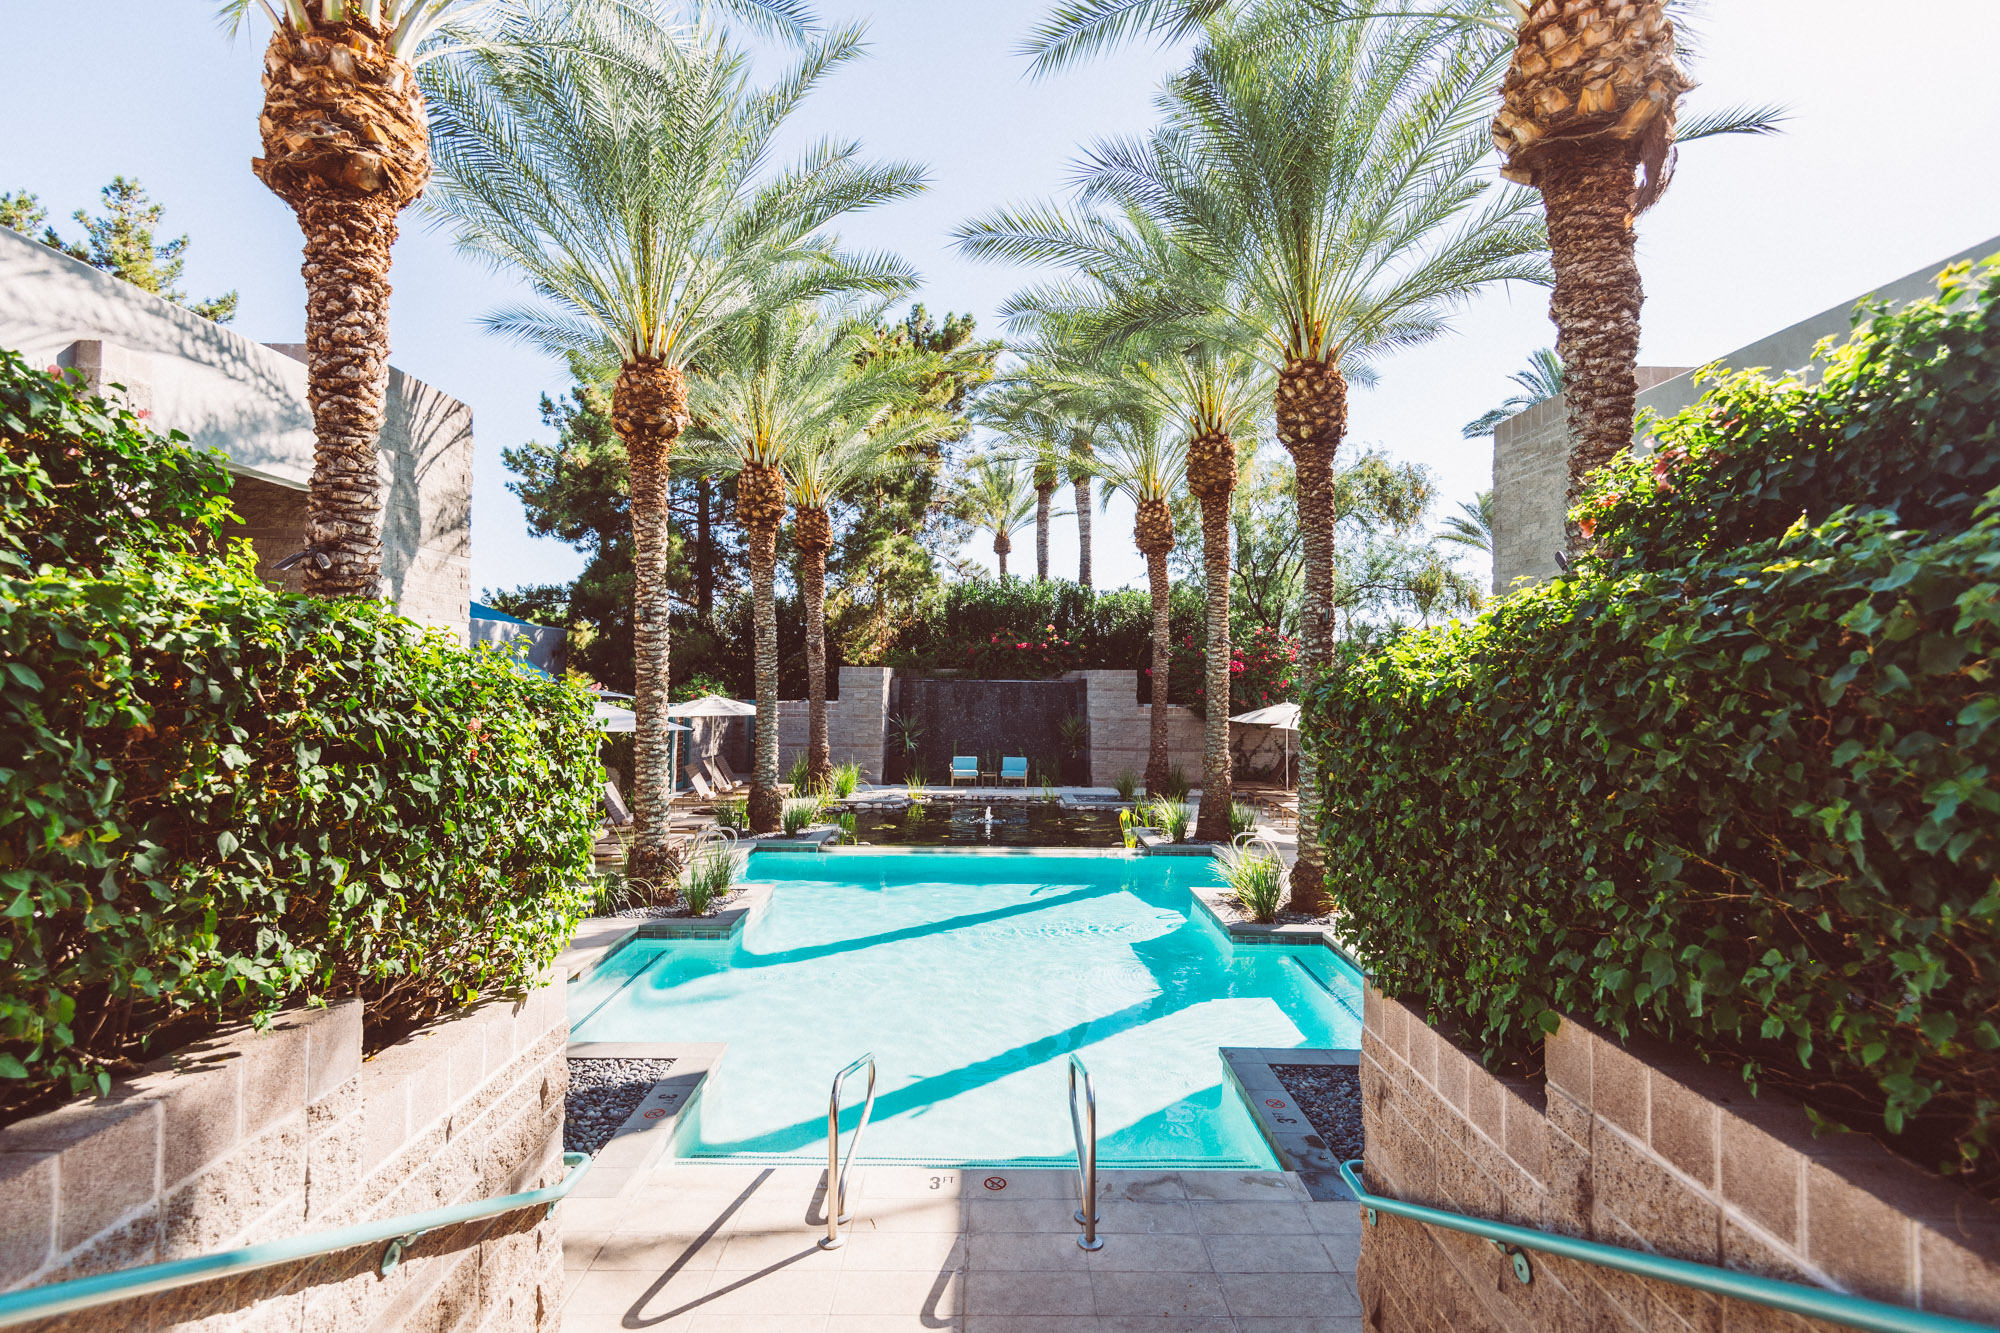 Things To Do In Phoenix — Spa Avania at Hyatt Regency — Jeff On The Road — All photos are under Copyright  © 2019 Jeff Frenette Photography / dezjeff. To use the photos, please contact me at dezjeff@me.com.